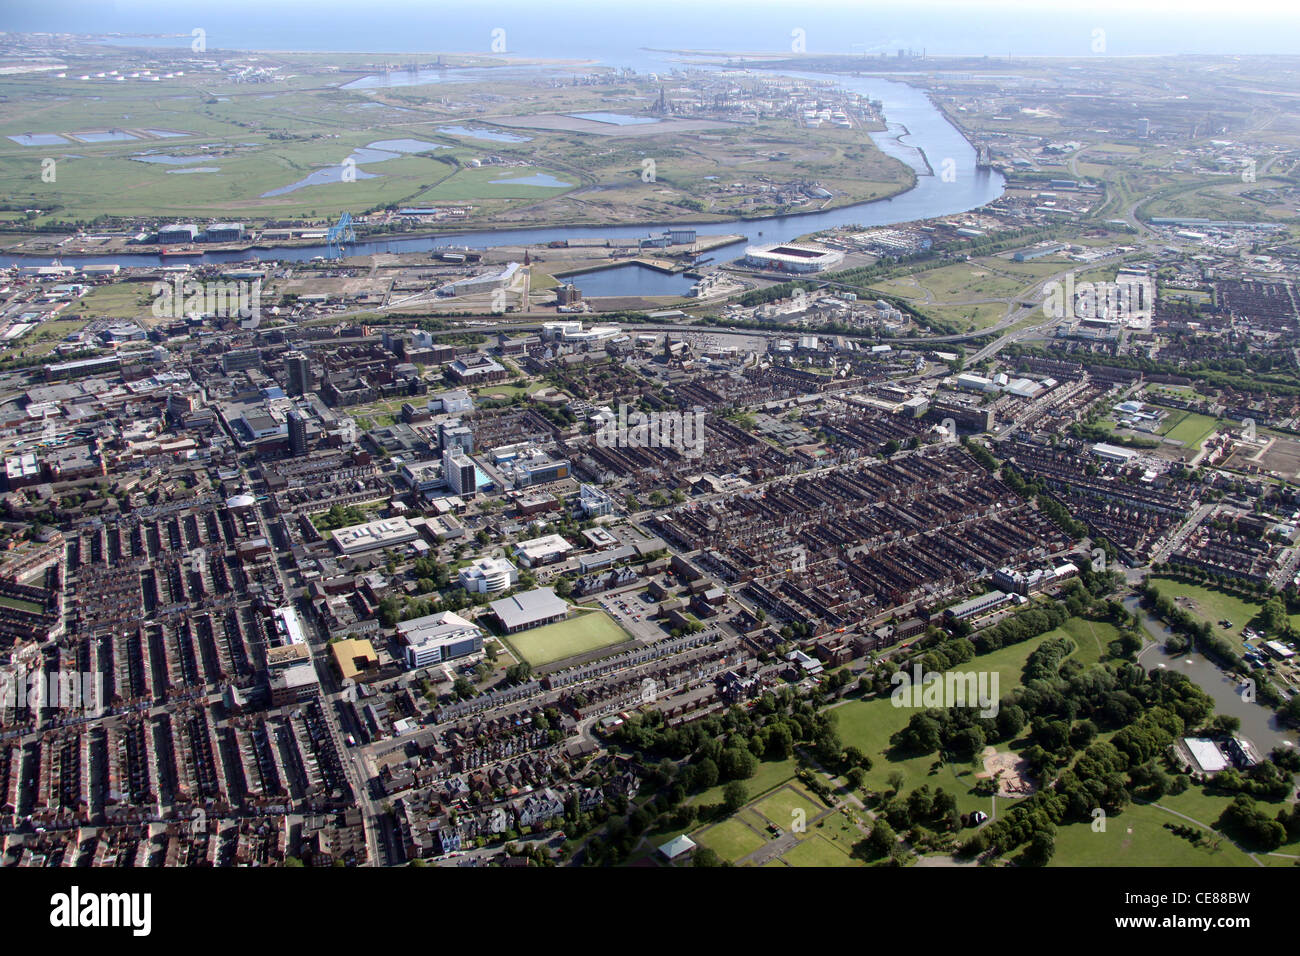 Aerial view of Middlesborough looking out across the Tees River towards the North Sea - Stock Image